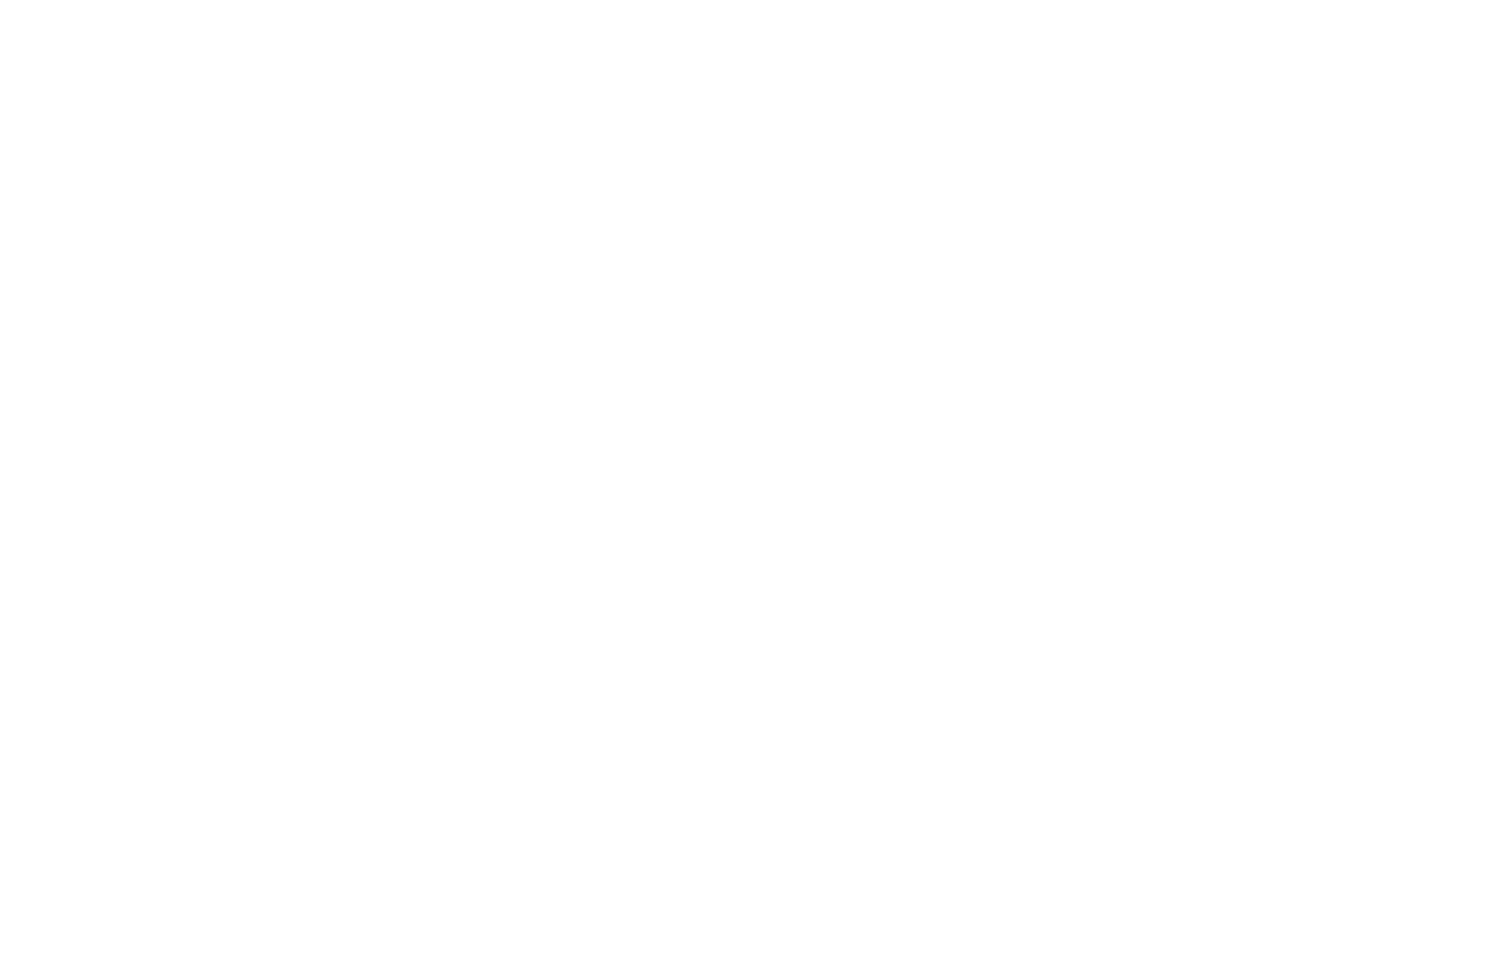 Durango Family & Commercial Photography